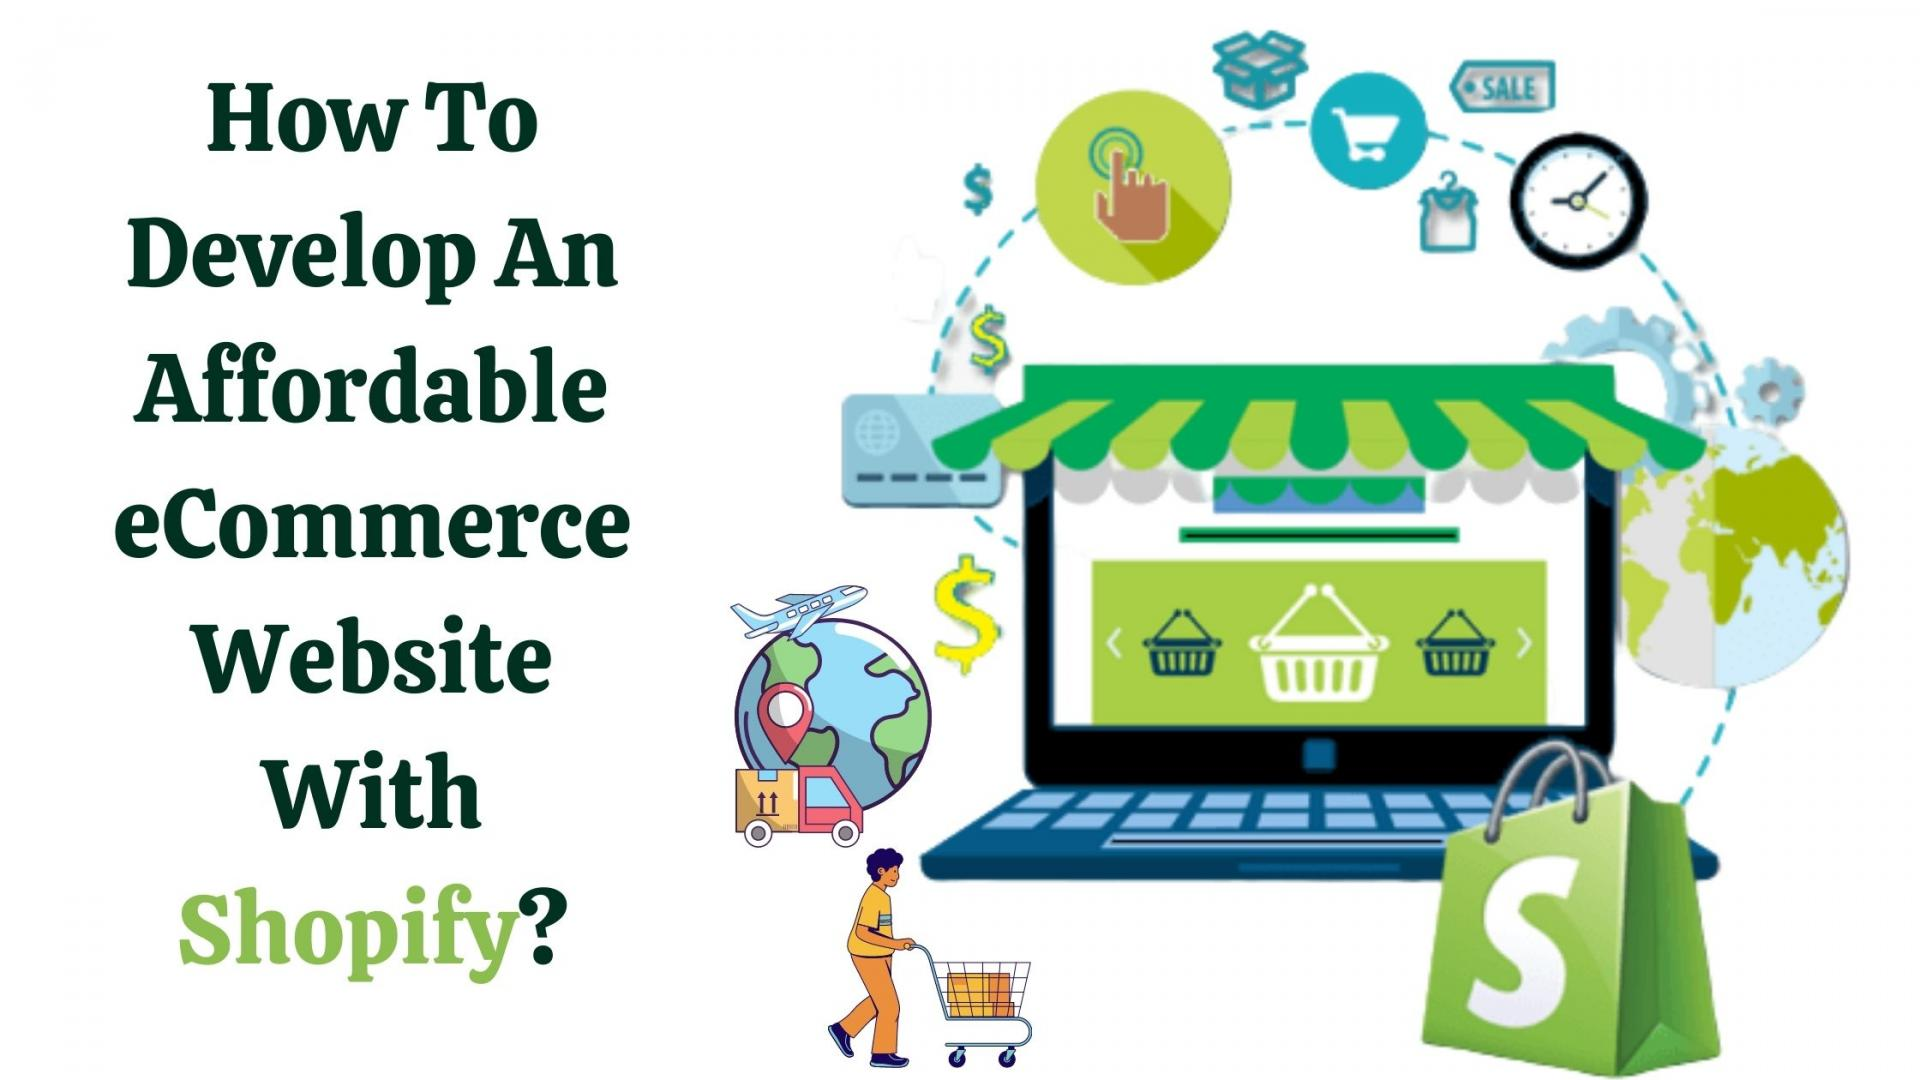 How To Develop An Affordable eCommerce Website With Shopify